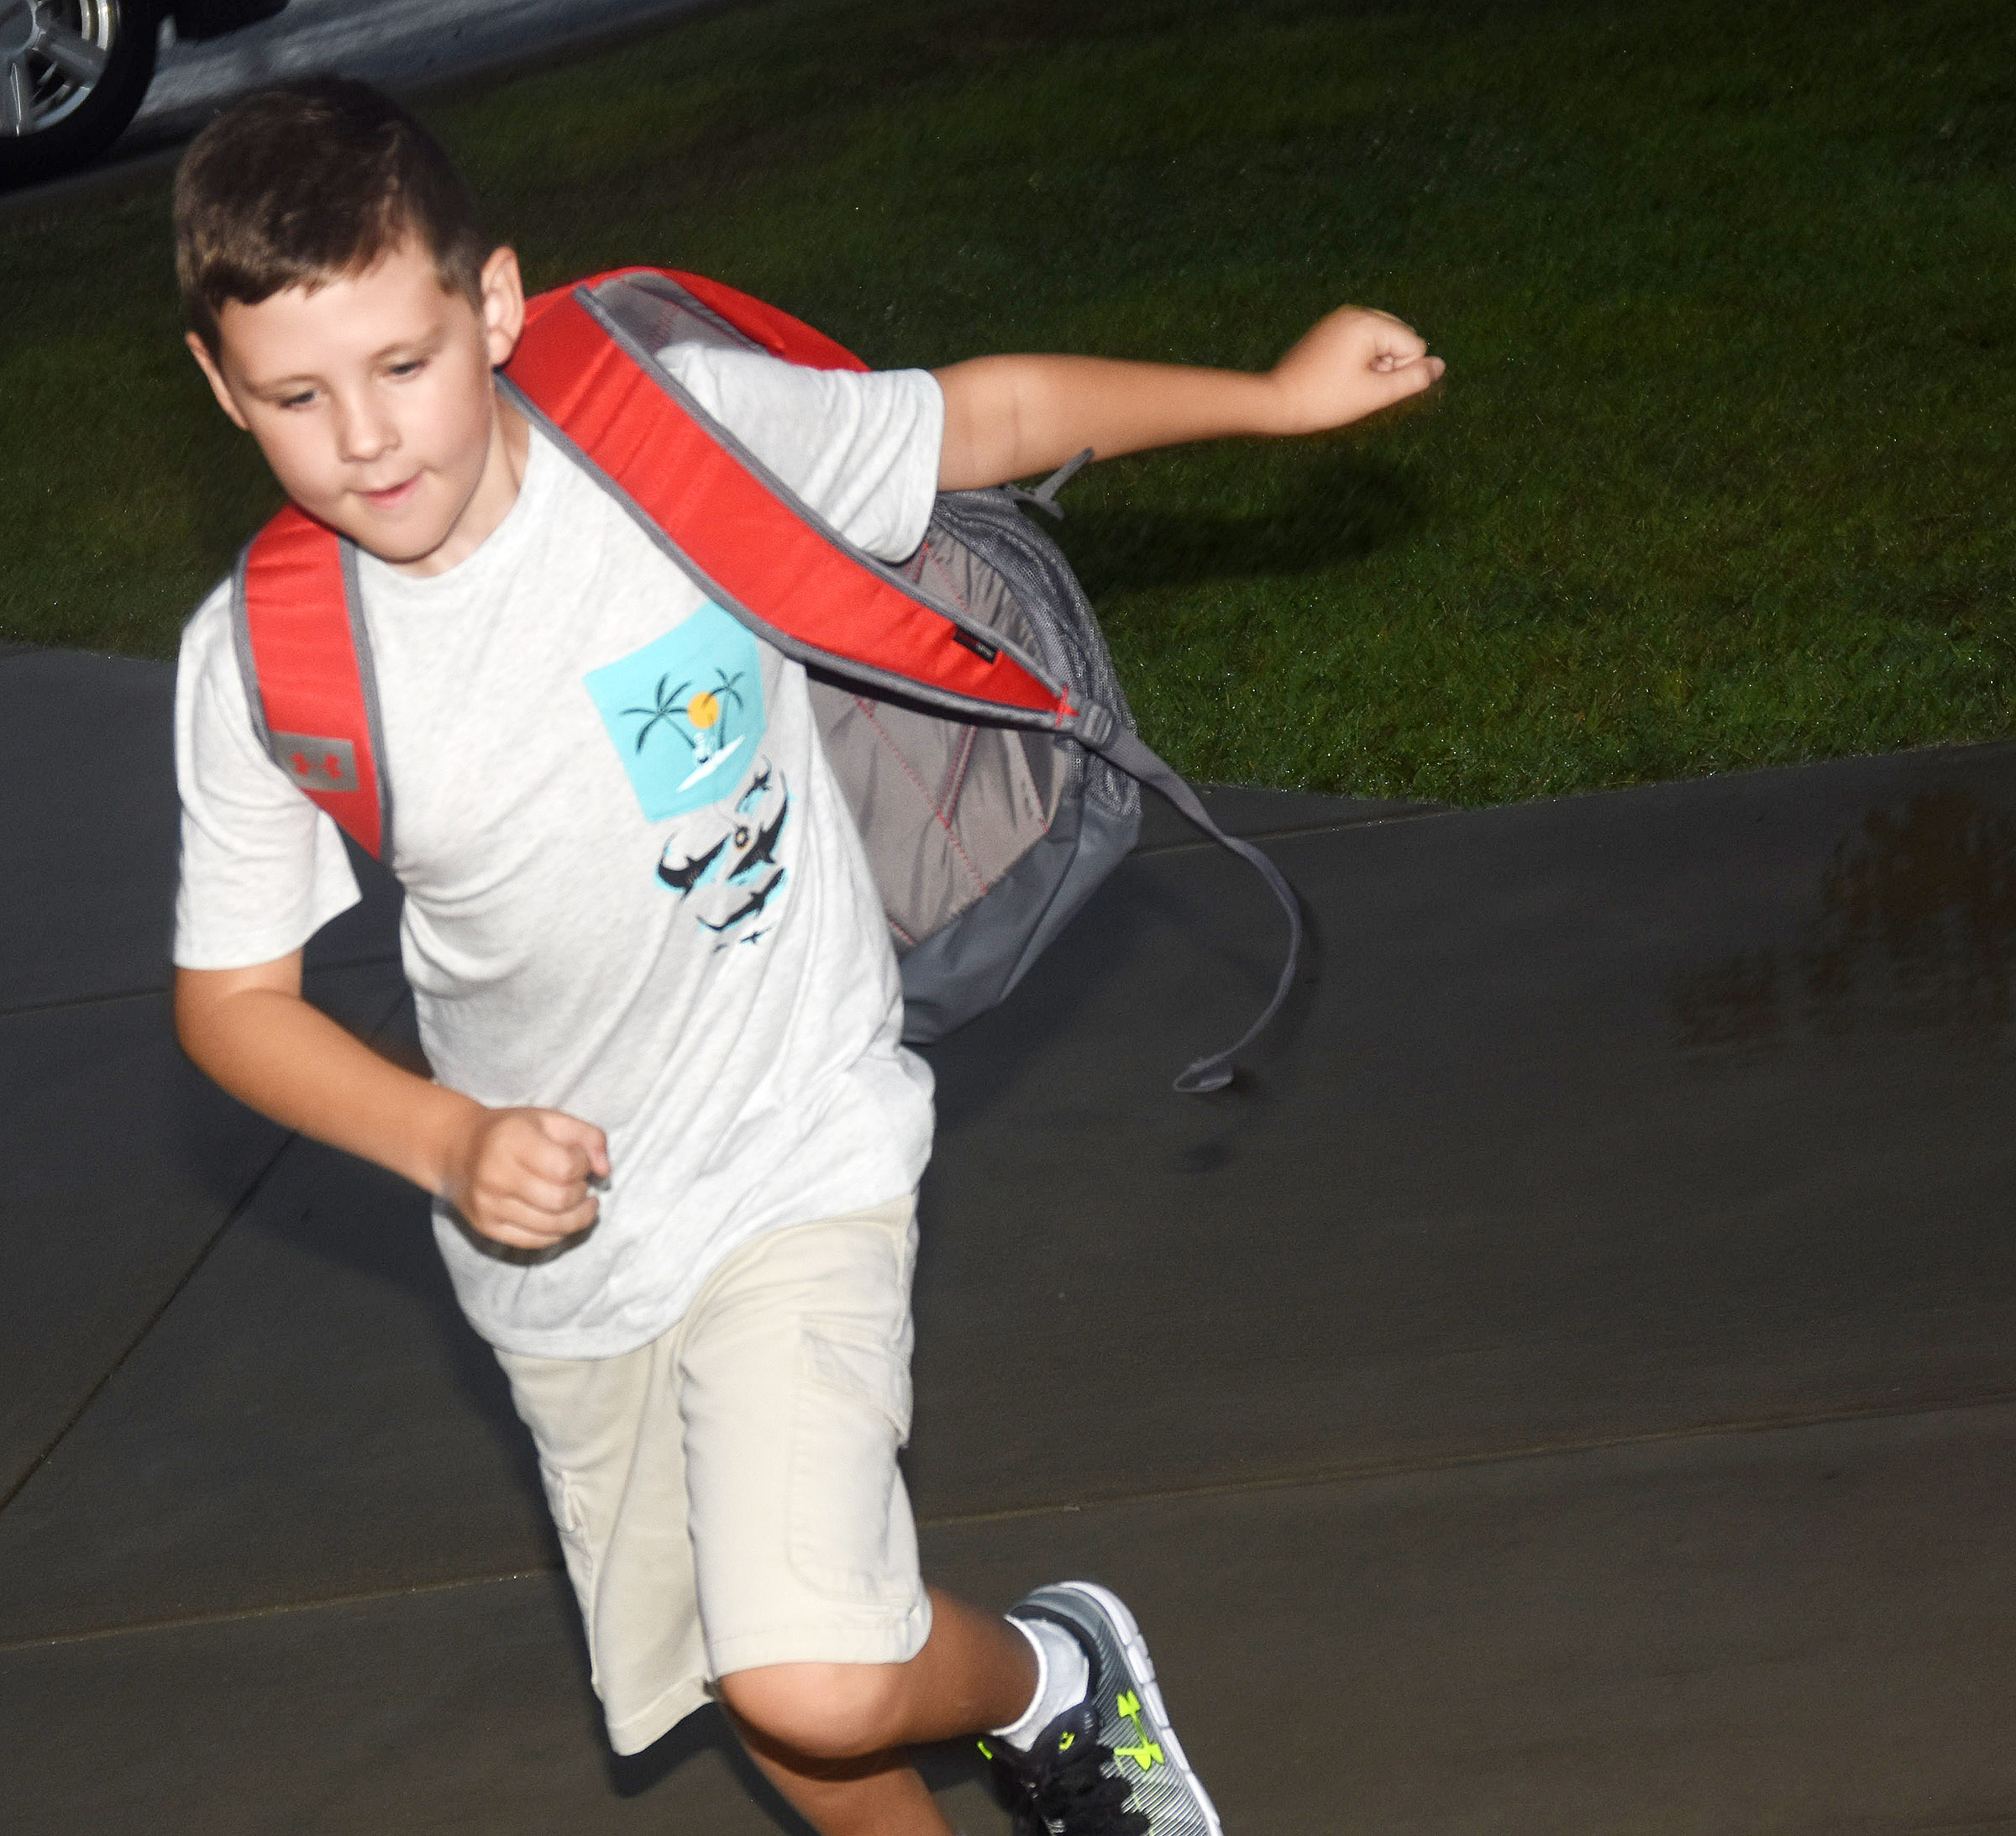 Campbellsville Elementary School fourth-grader Ryan Tungate skips to the door on the first day of school.